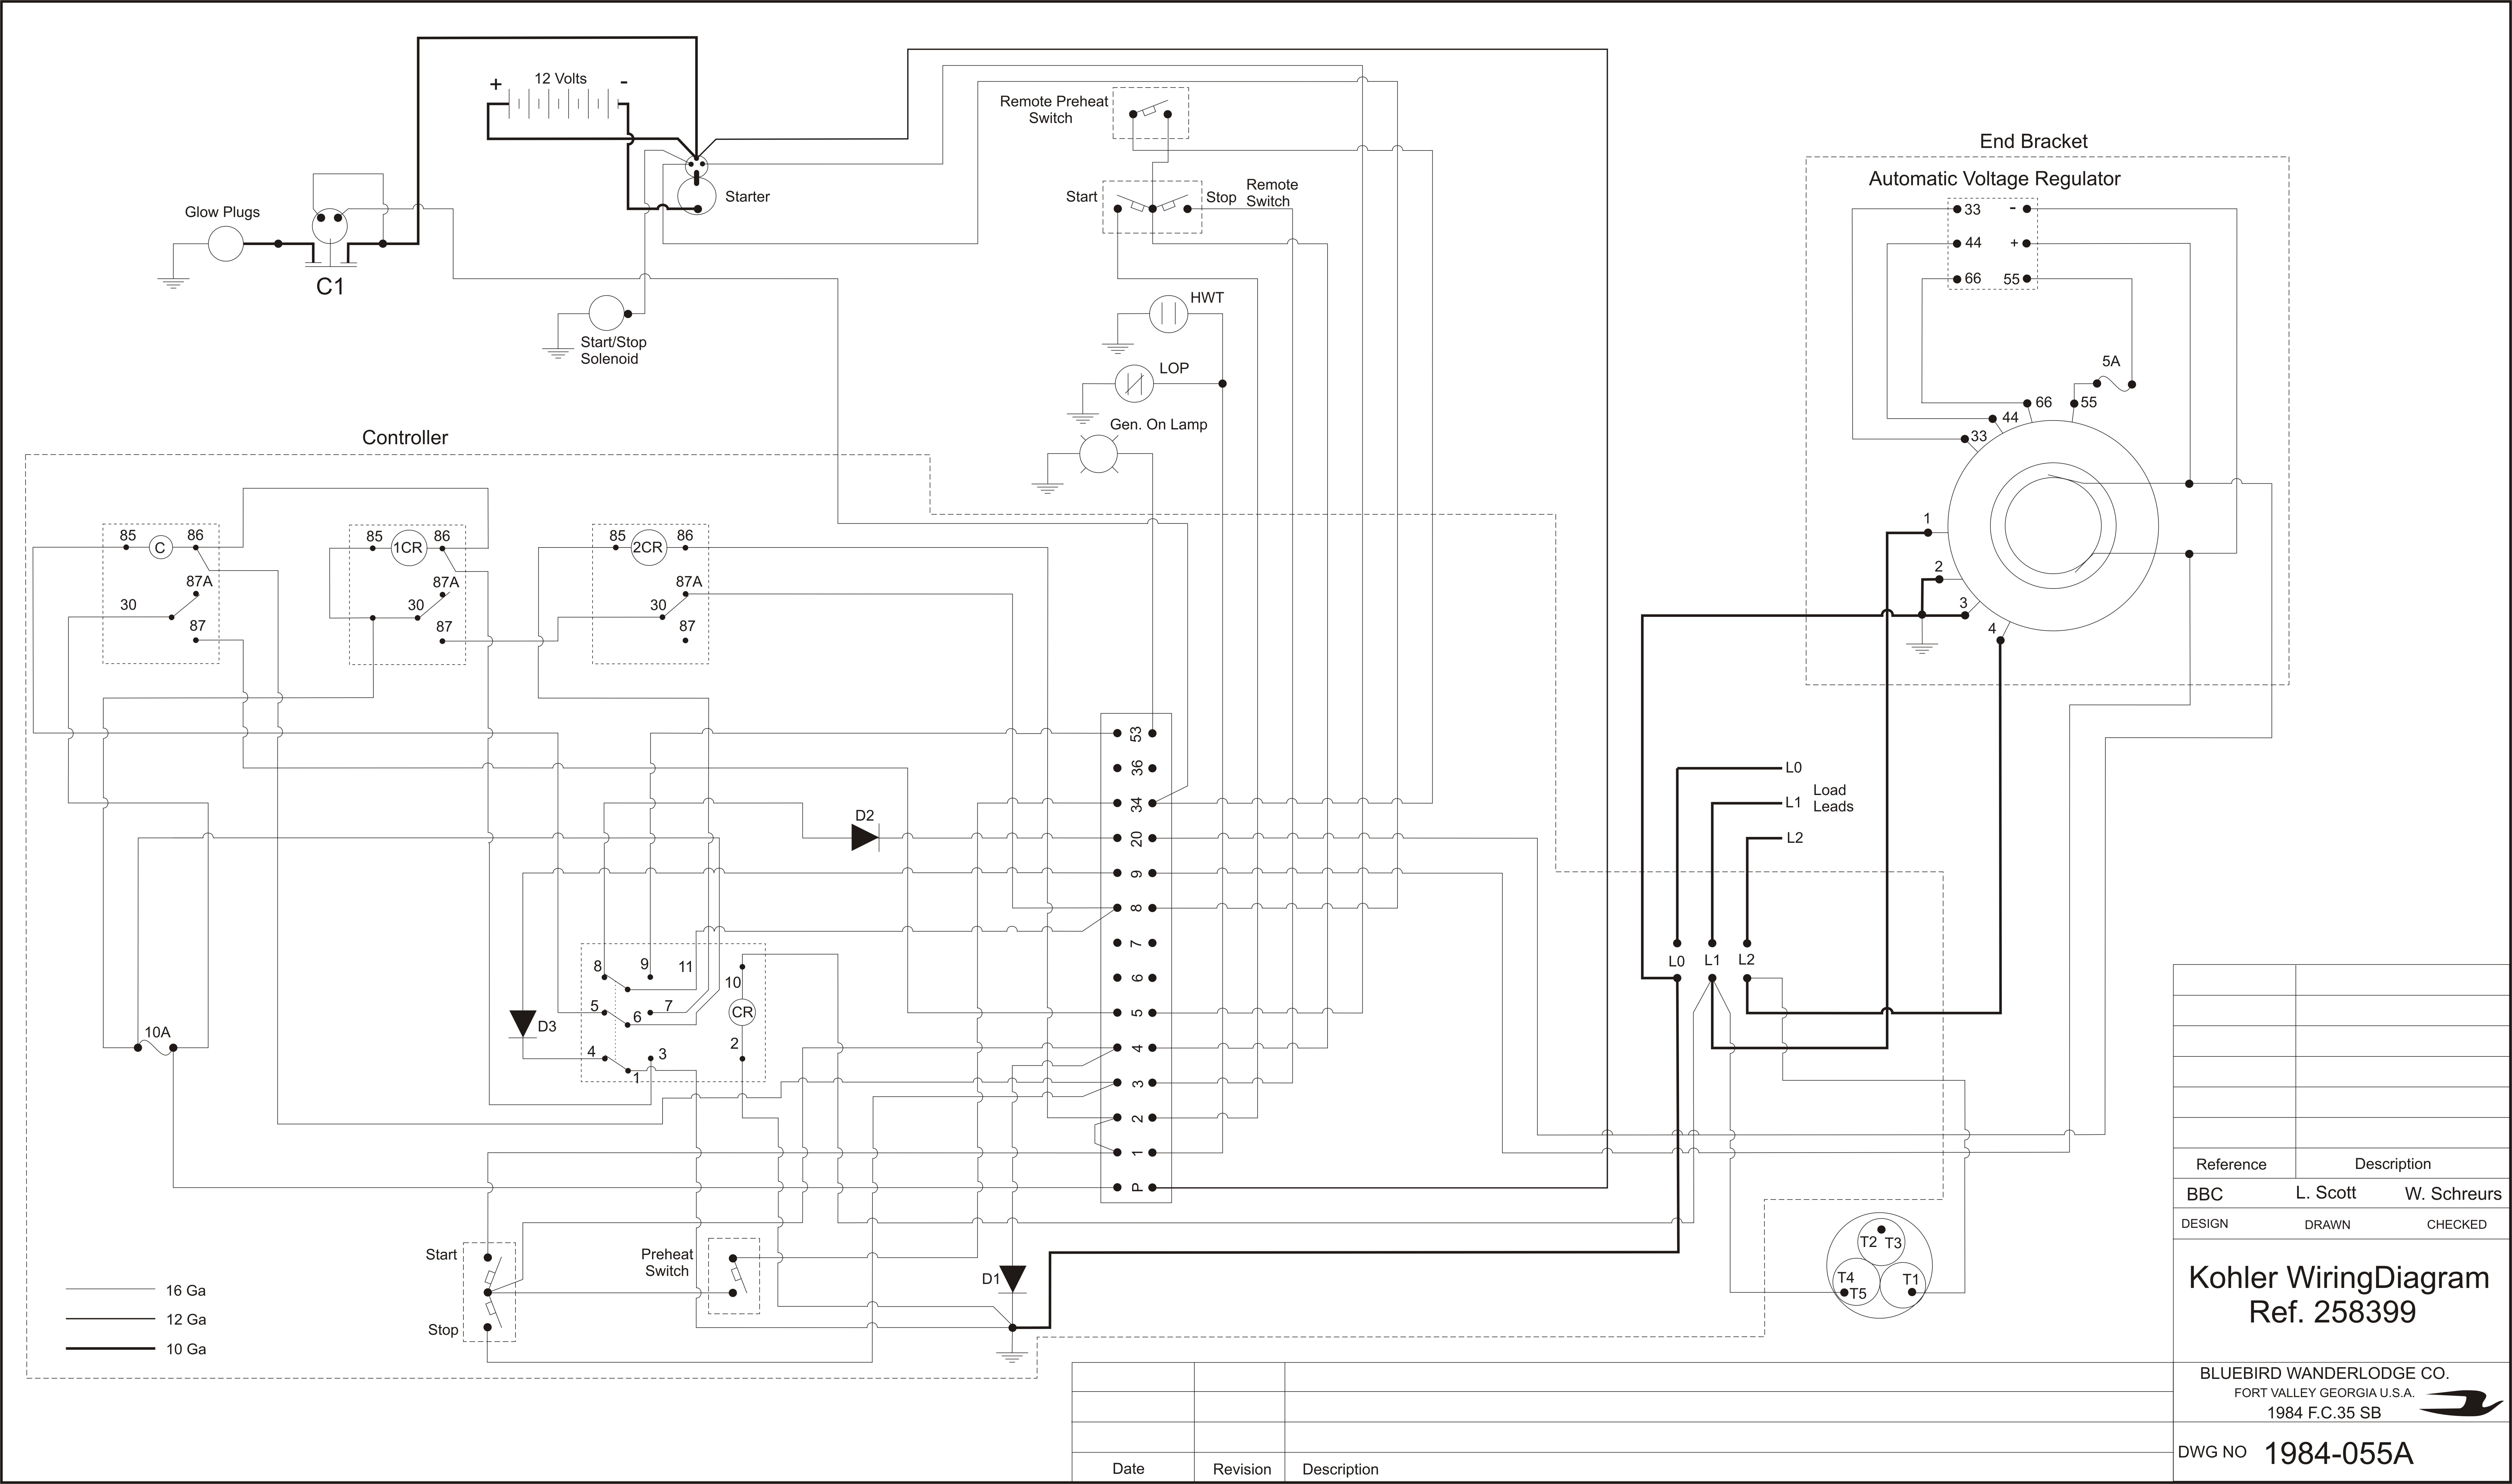 Fabulous Cat 3176 Engine Diagram Wiring Library Wiring Cloud Oideiuggs Outletorg